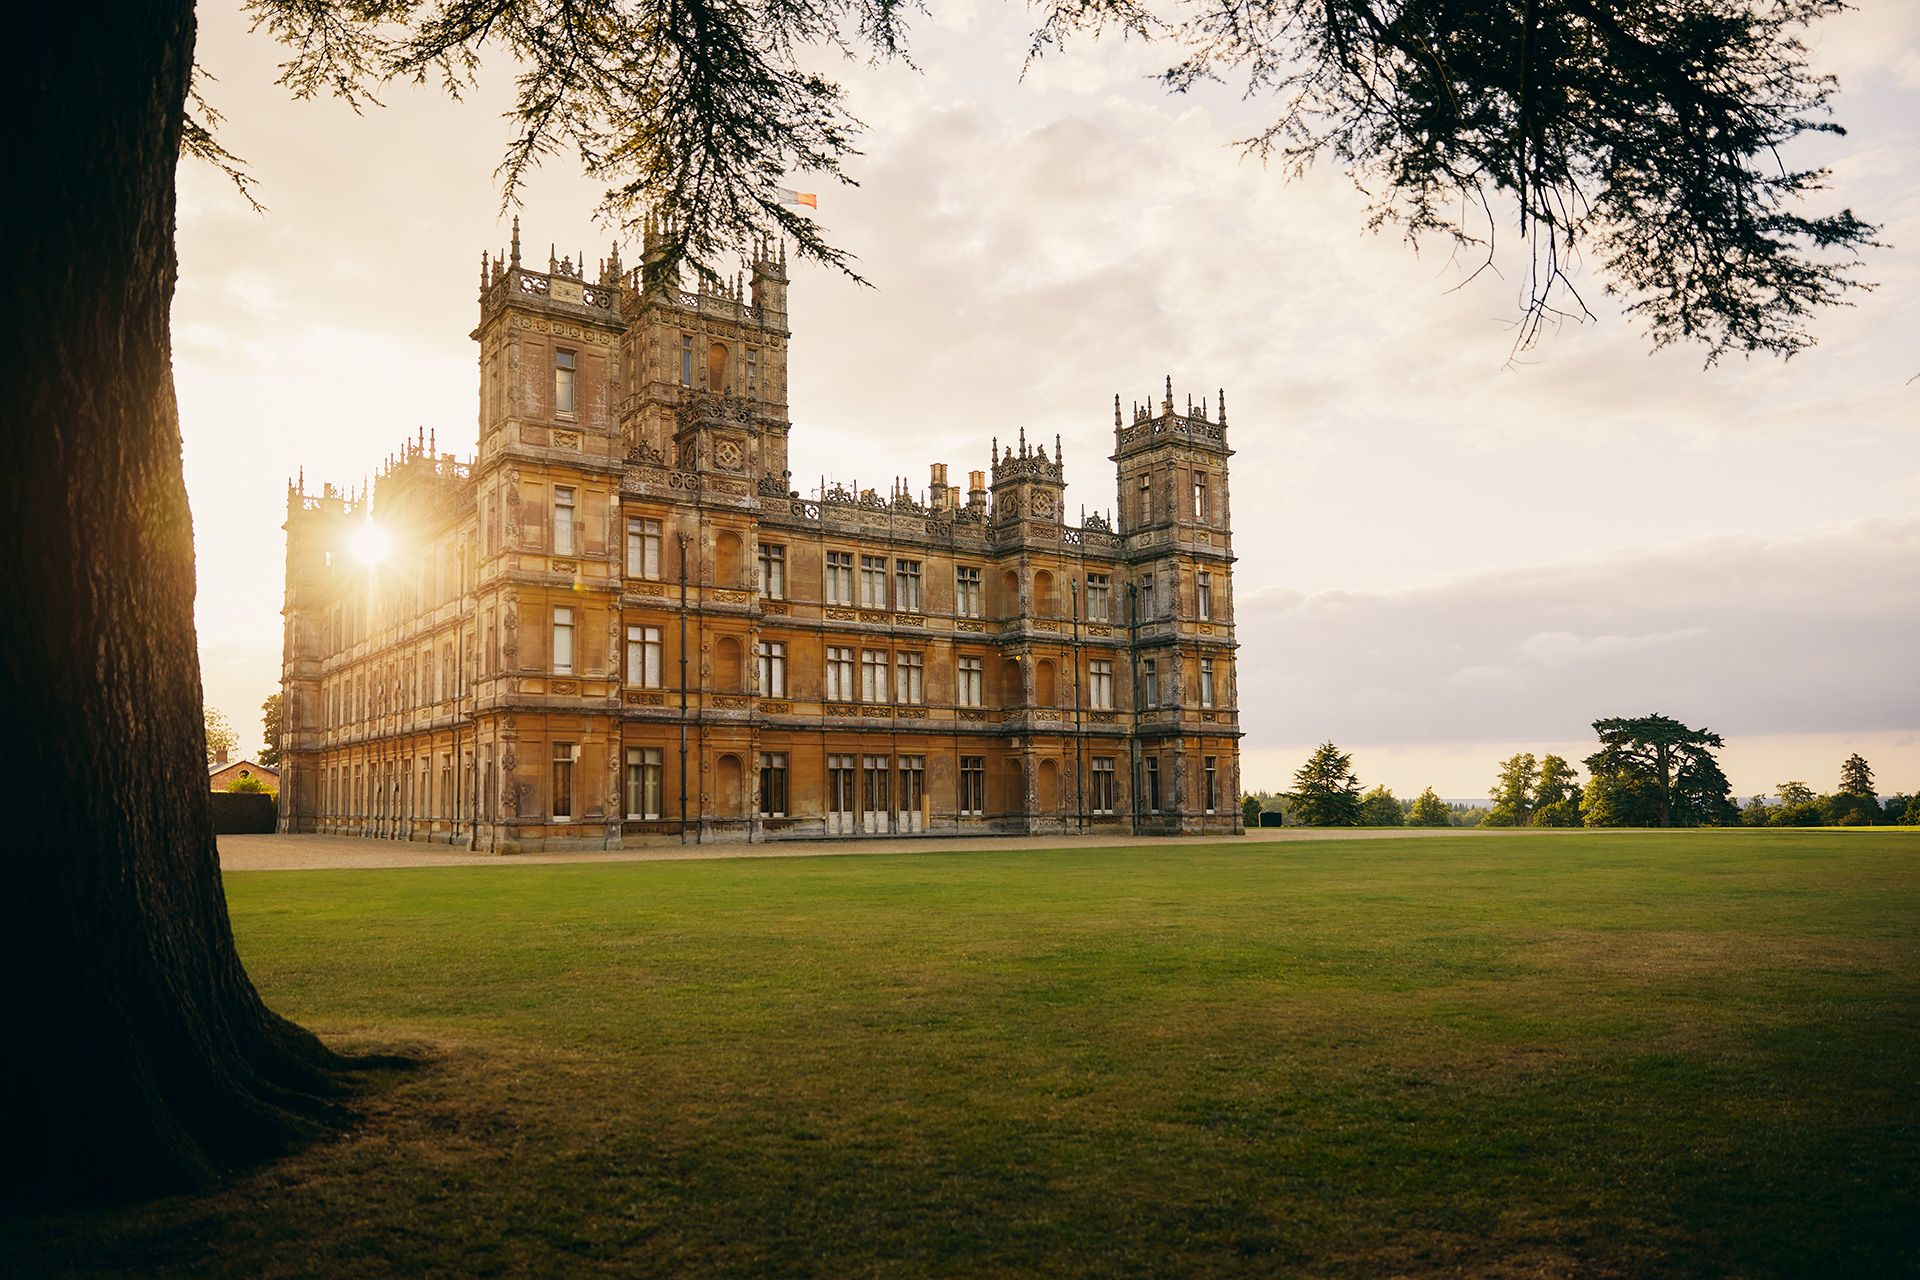 Highclere Castle, the Real-Life Downton Abbey, Is Available to Book for One Night Only on Airbnb